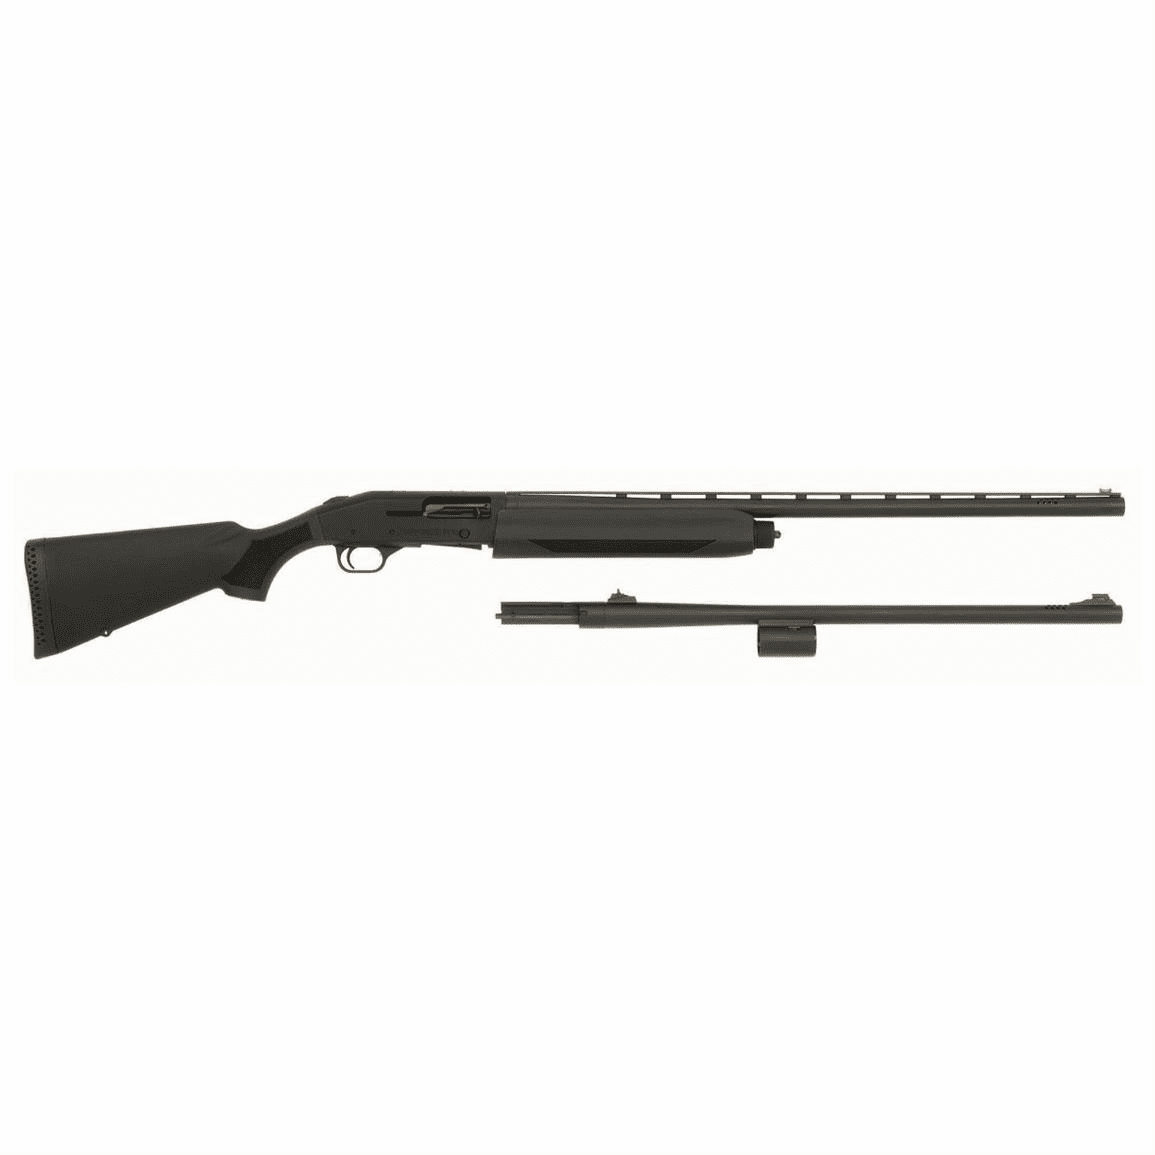 "Mossberg 930 Combo w/One 28"" Barrel and One 24"" Barrel both 12ga, New, In Stock"